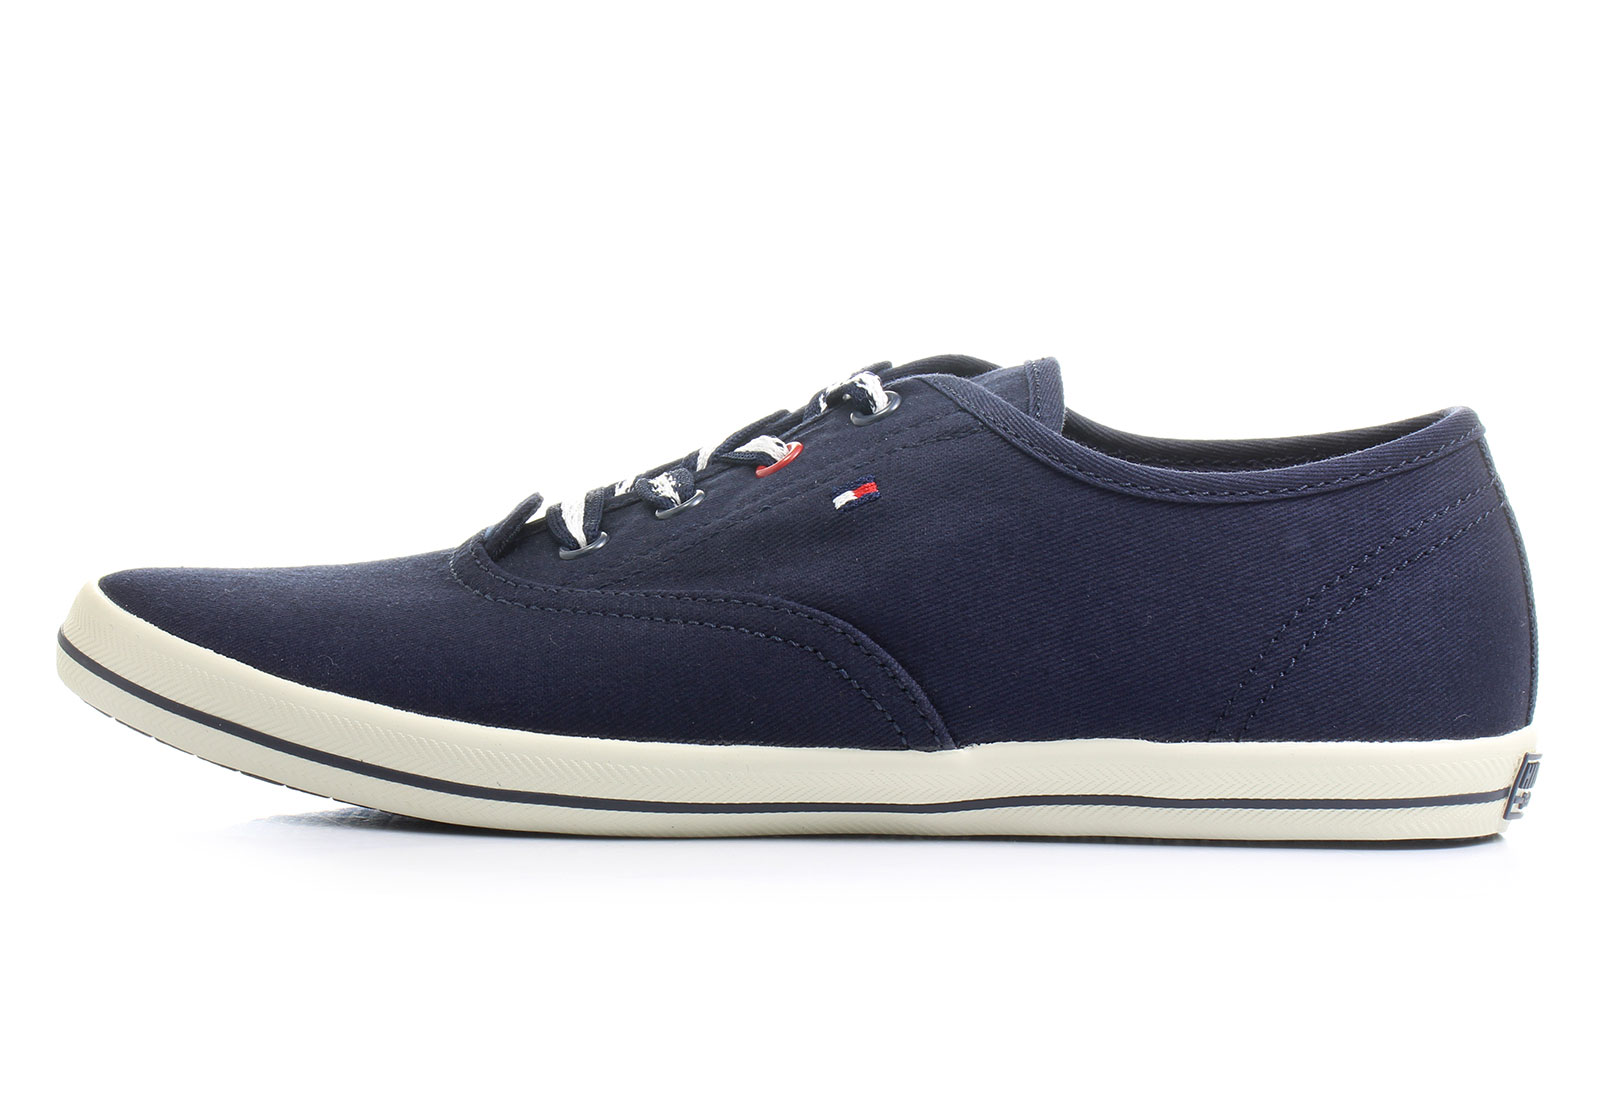 Tommy Hilfiger Półbuty - Victoria 1d - 16S-0836-403 - Obuwie i buty ... ab6209e0fe